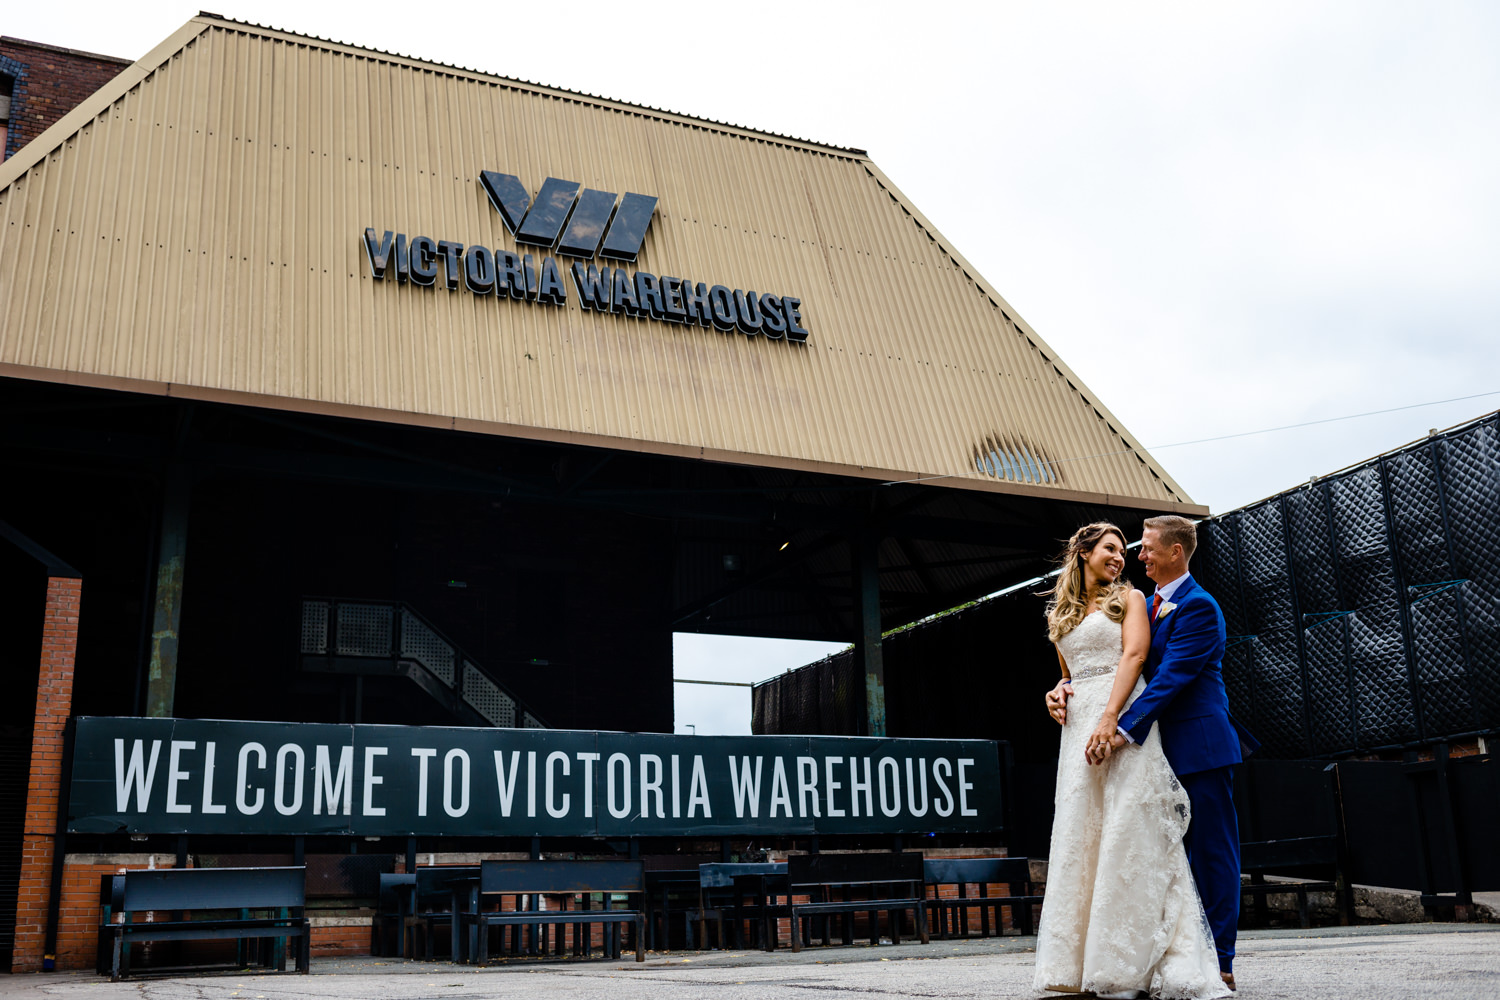 victoria-warehouse-wedding-photographer-057.jpg